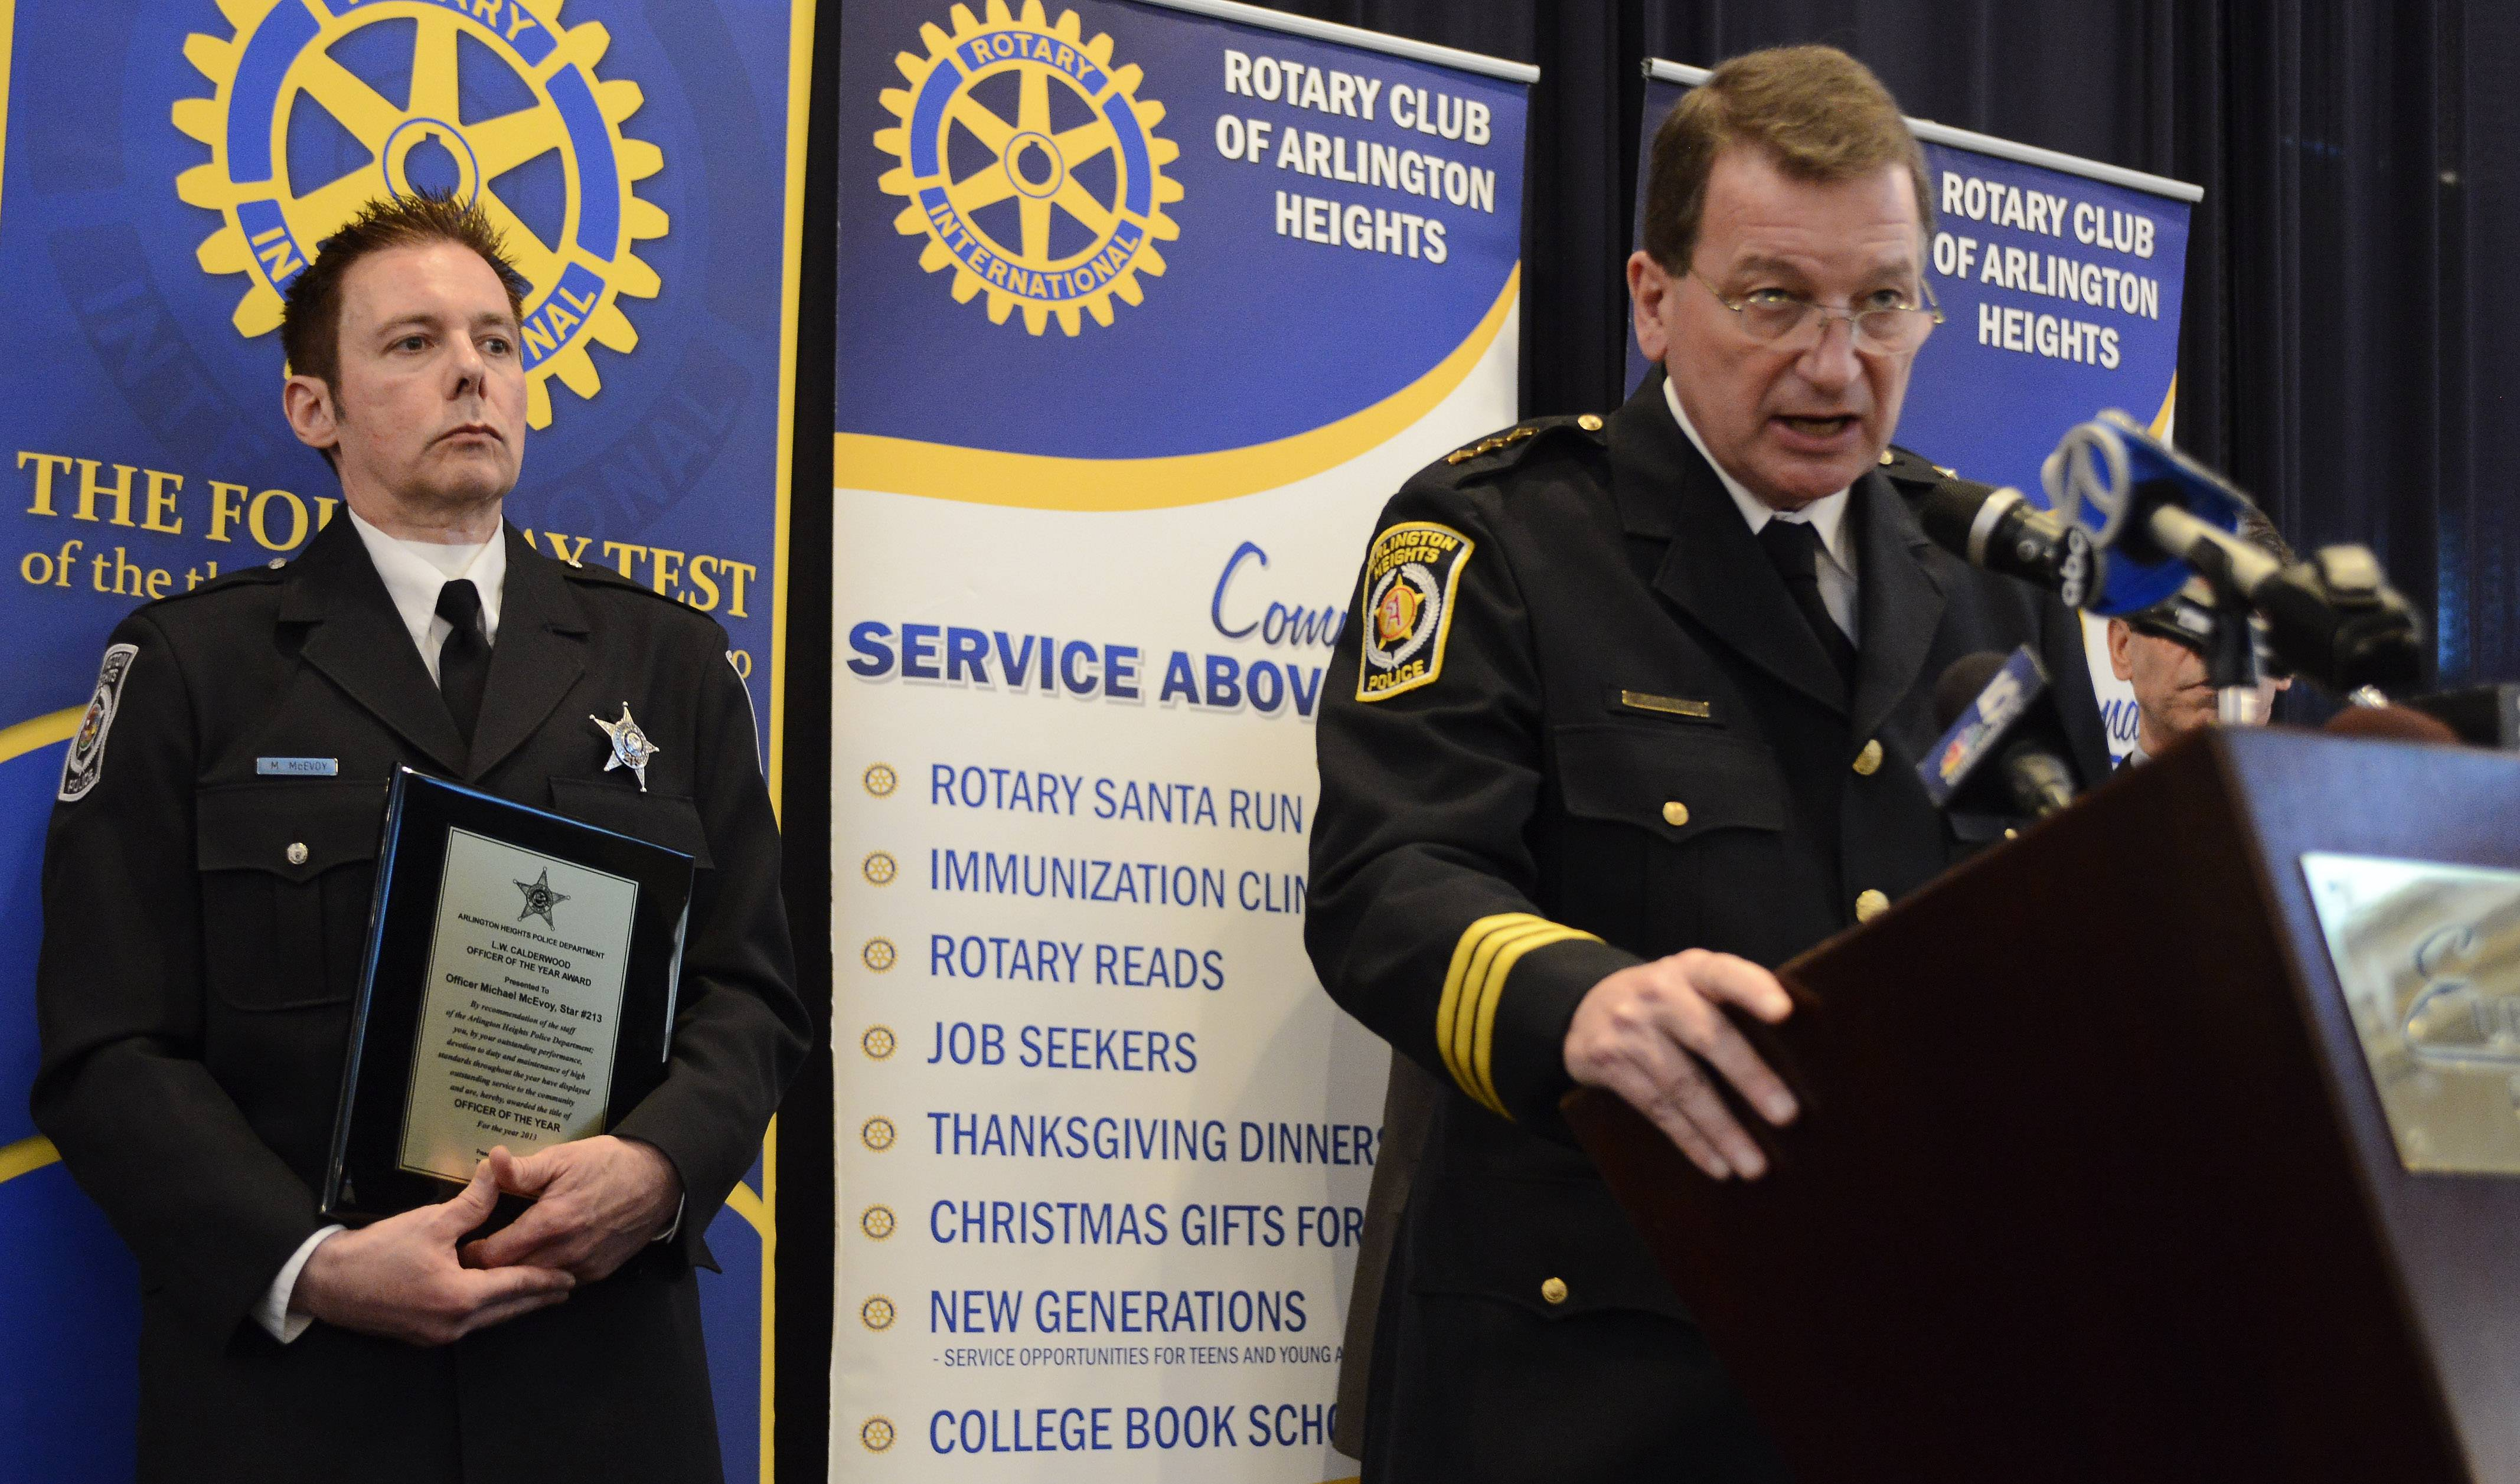 Arlington Heights Chief of Police Gerald Mourning, right, speaks after the presentation of the L.W. Calderwood Officer of the Year award to Michael McEvoy.